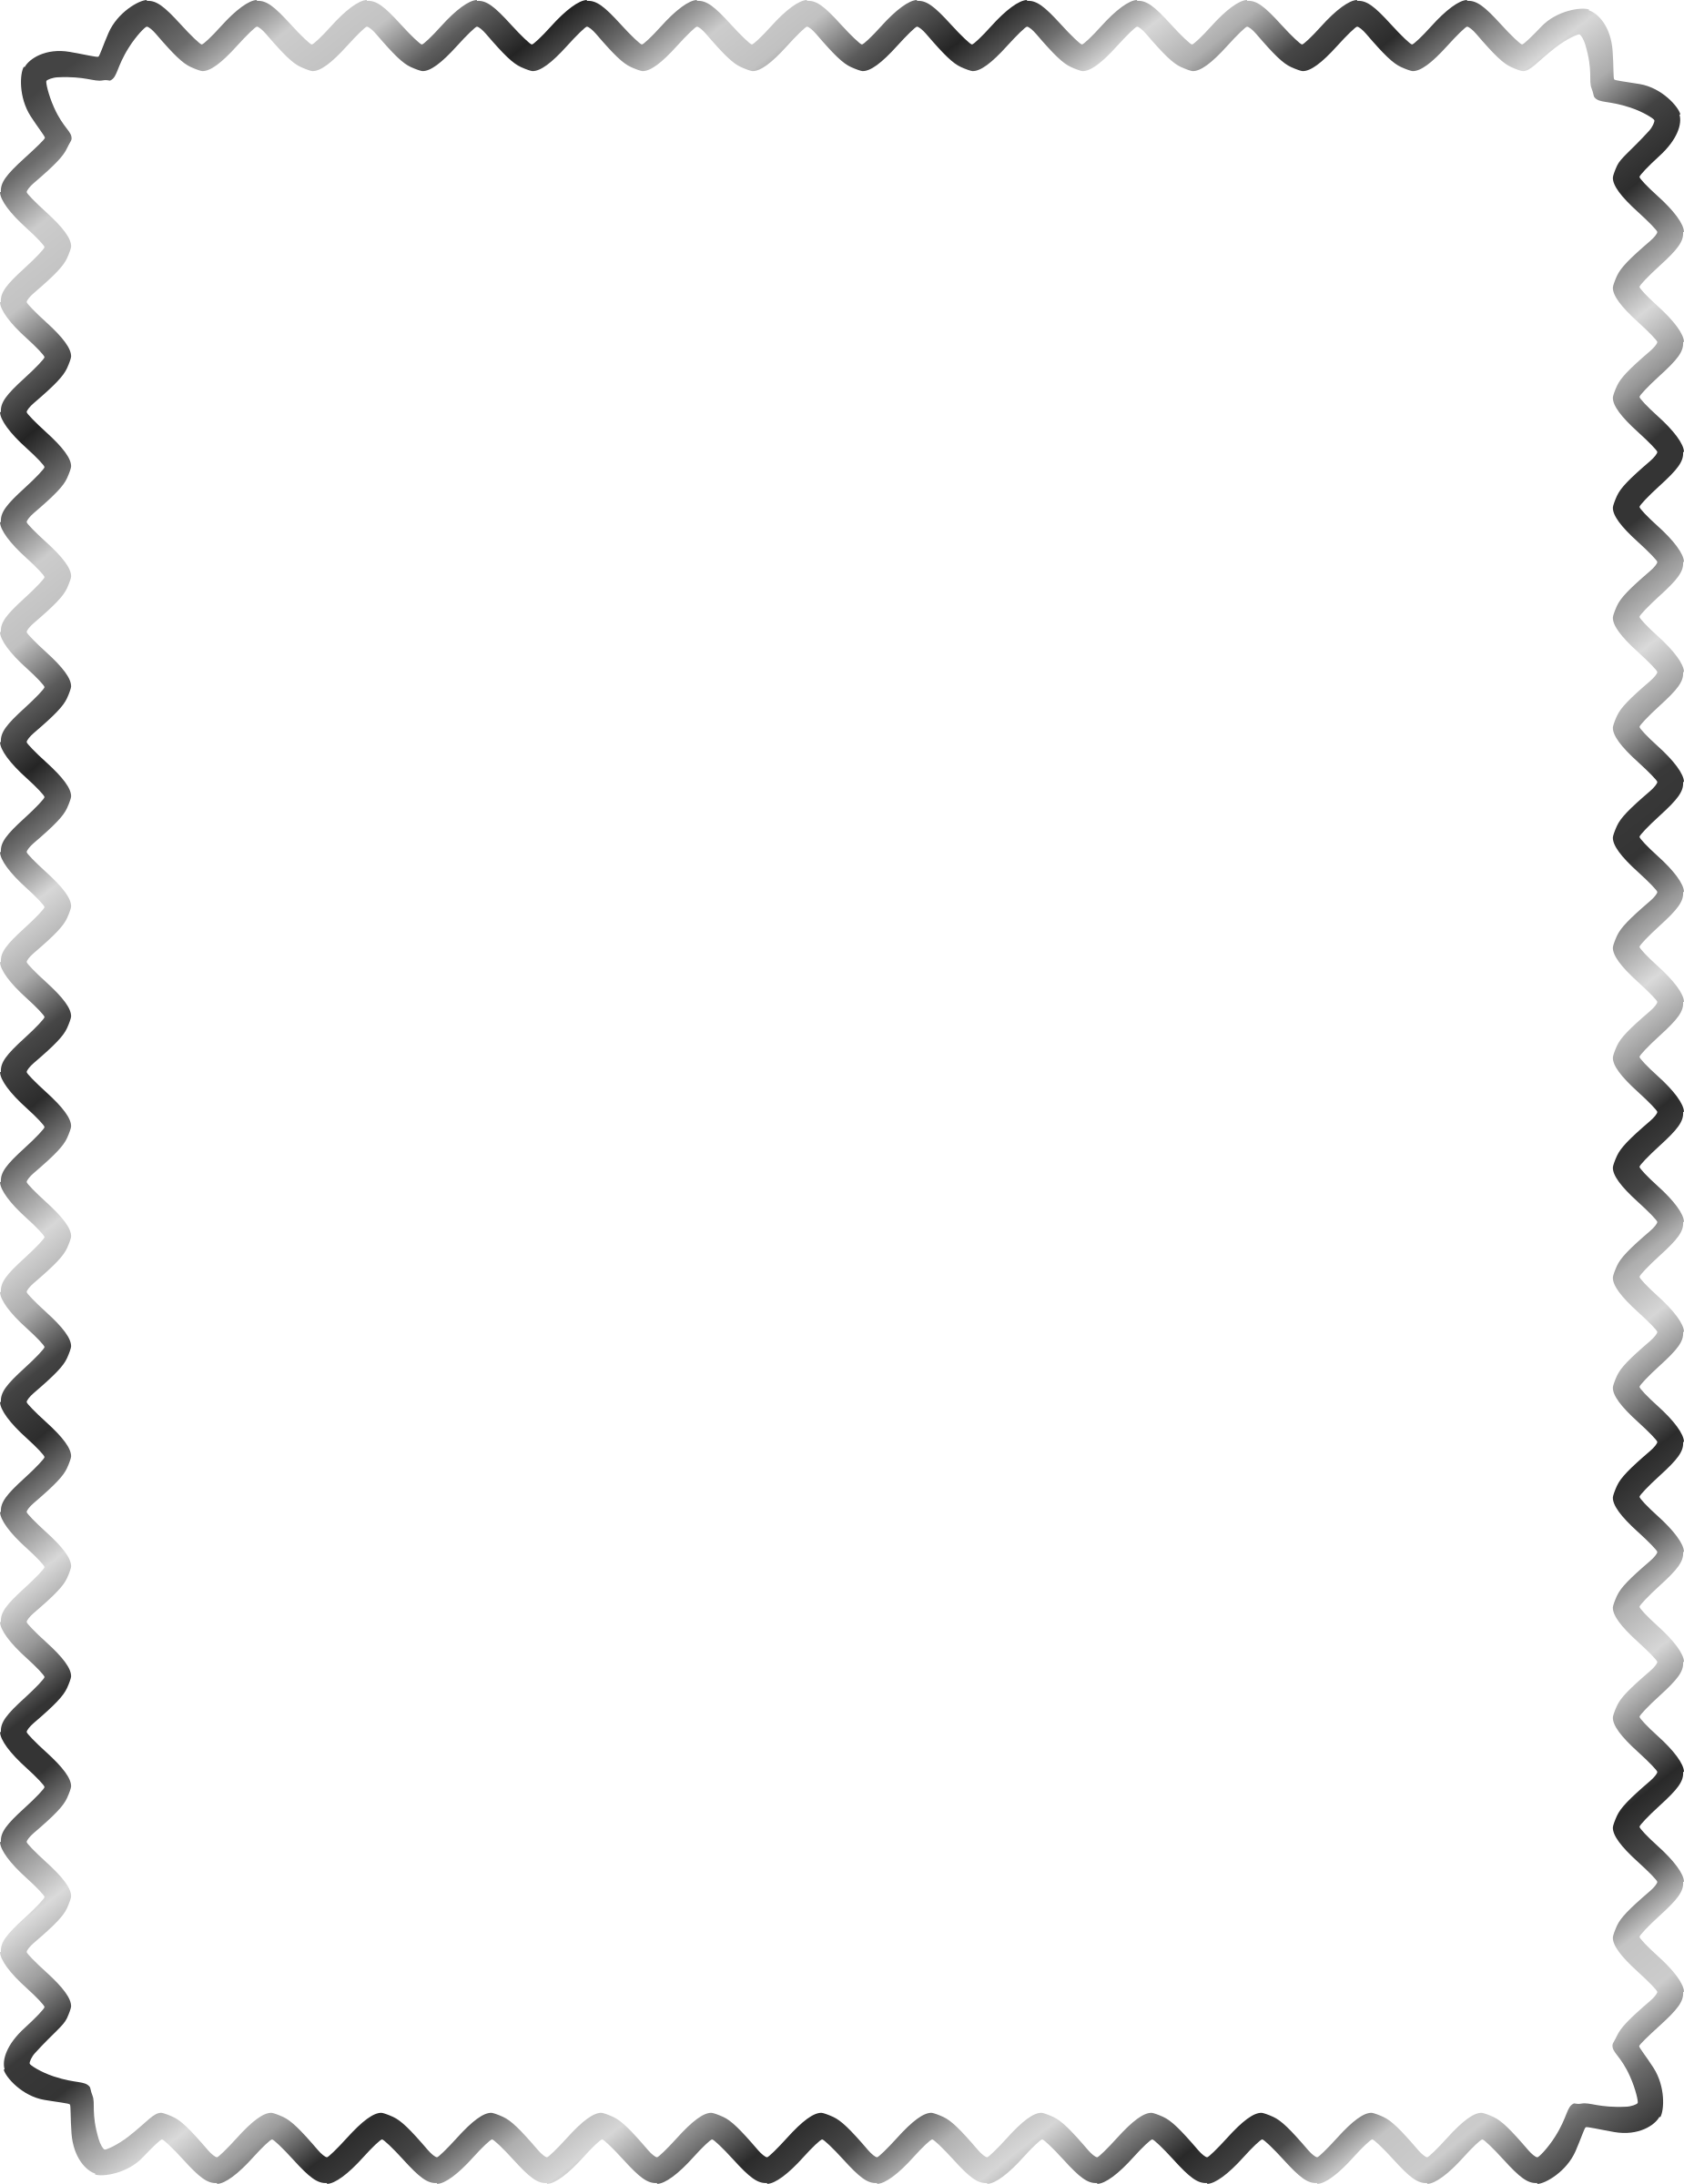 Star clipart black and white border picture black and white Clipart - Sine Wave Border picture black and white